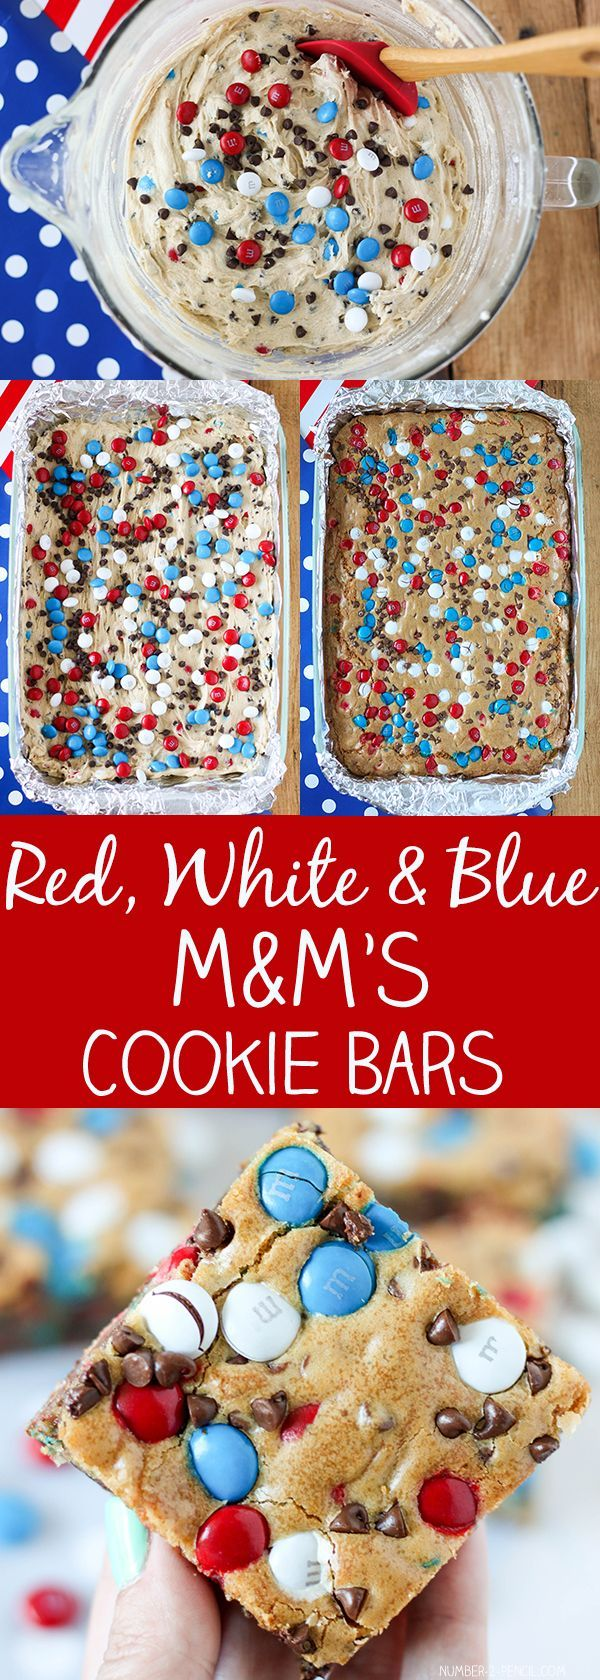 Patriotic Red White and Blue M&M'S Cookie Bars for 4th of July | #Cookies Sherman Financial Group